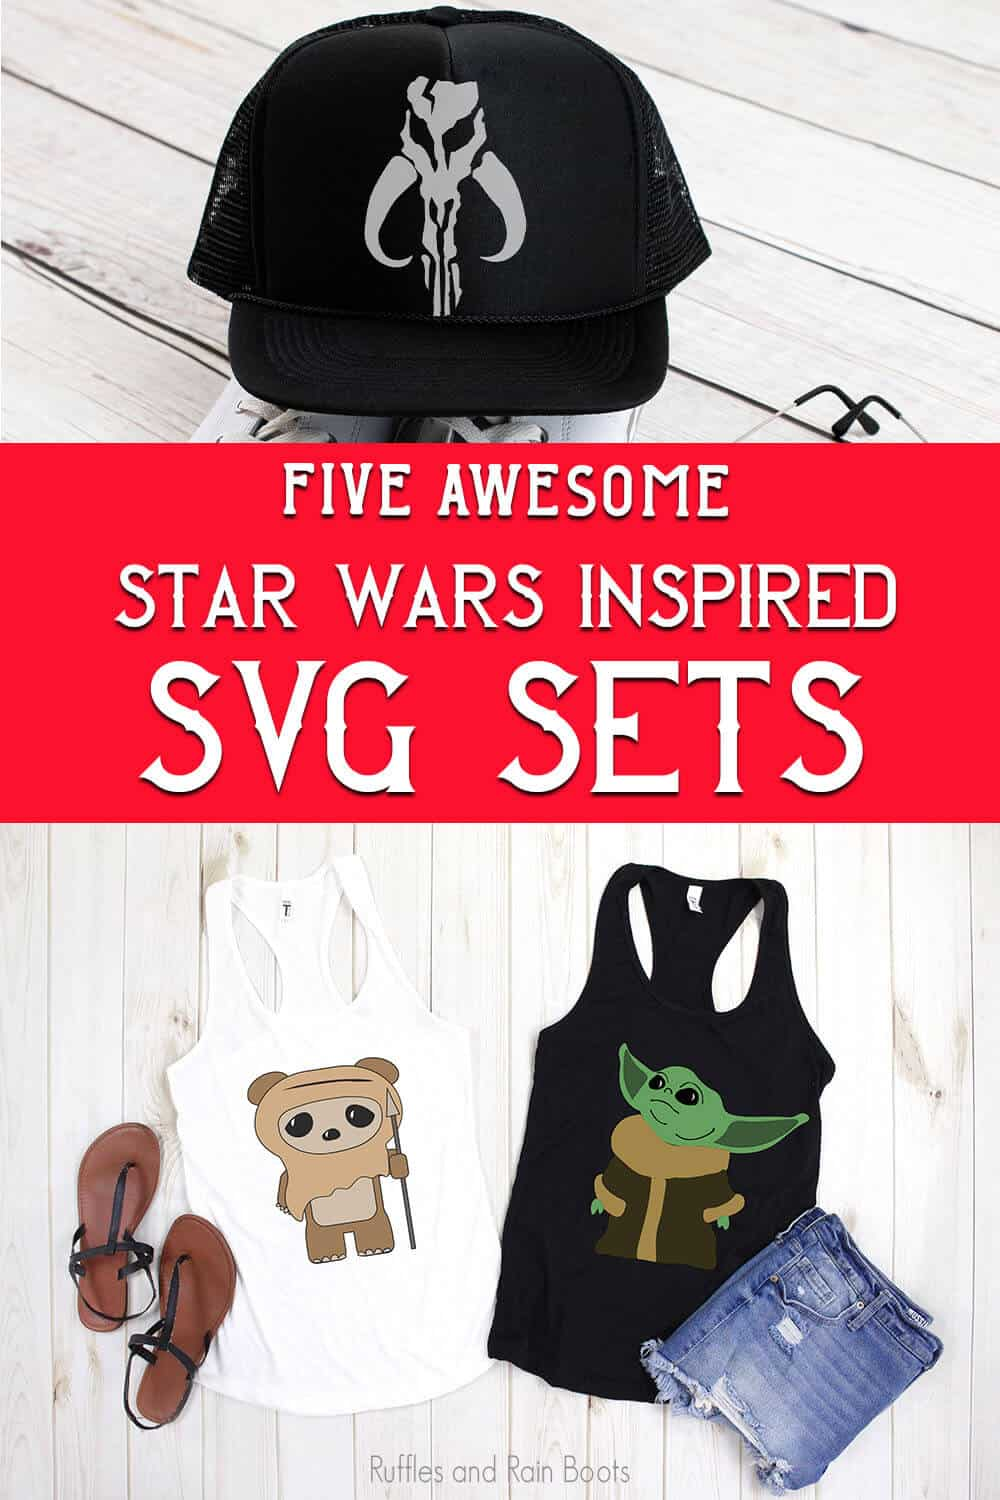 photo collage of mandalorian skull, ewok and baby yoda SVG sets with text which reads five awesome Star Wars inspired svg sets